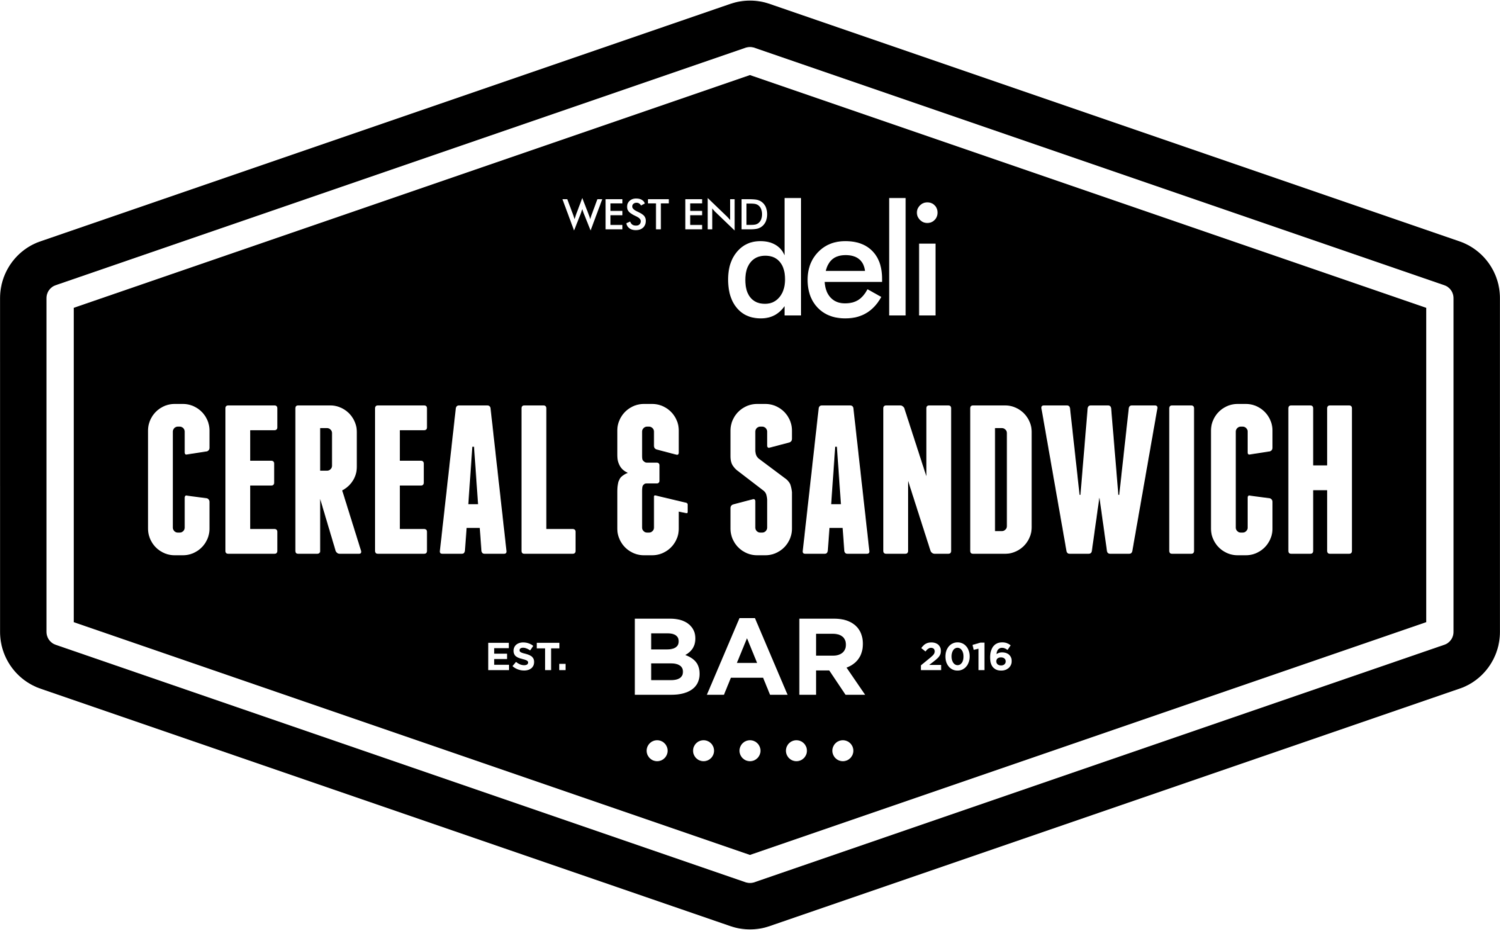 West End deli Cereal & Sandwich Bar | State Buildings Perth